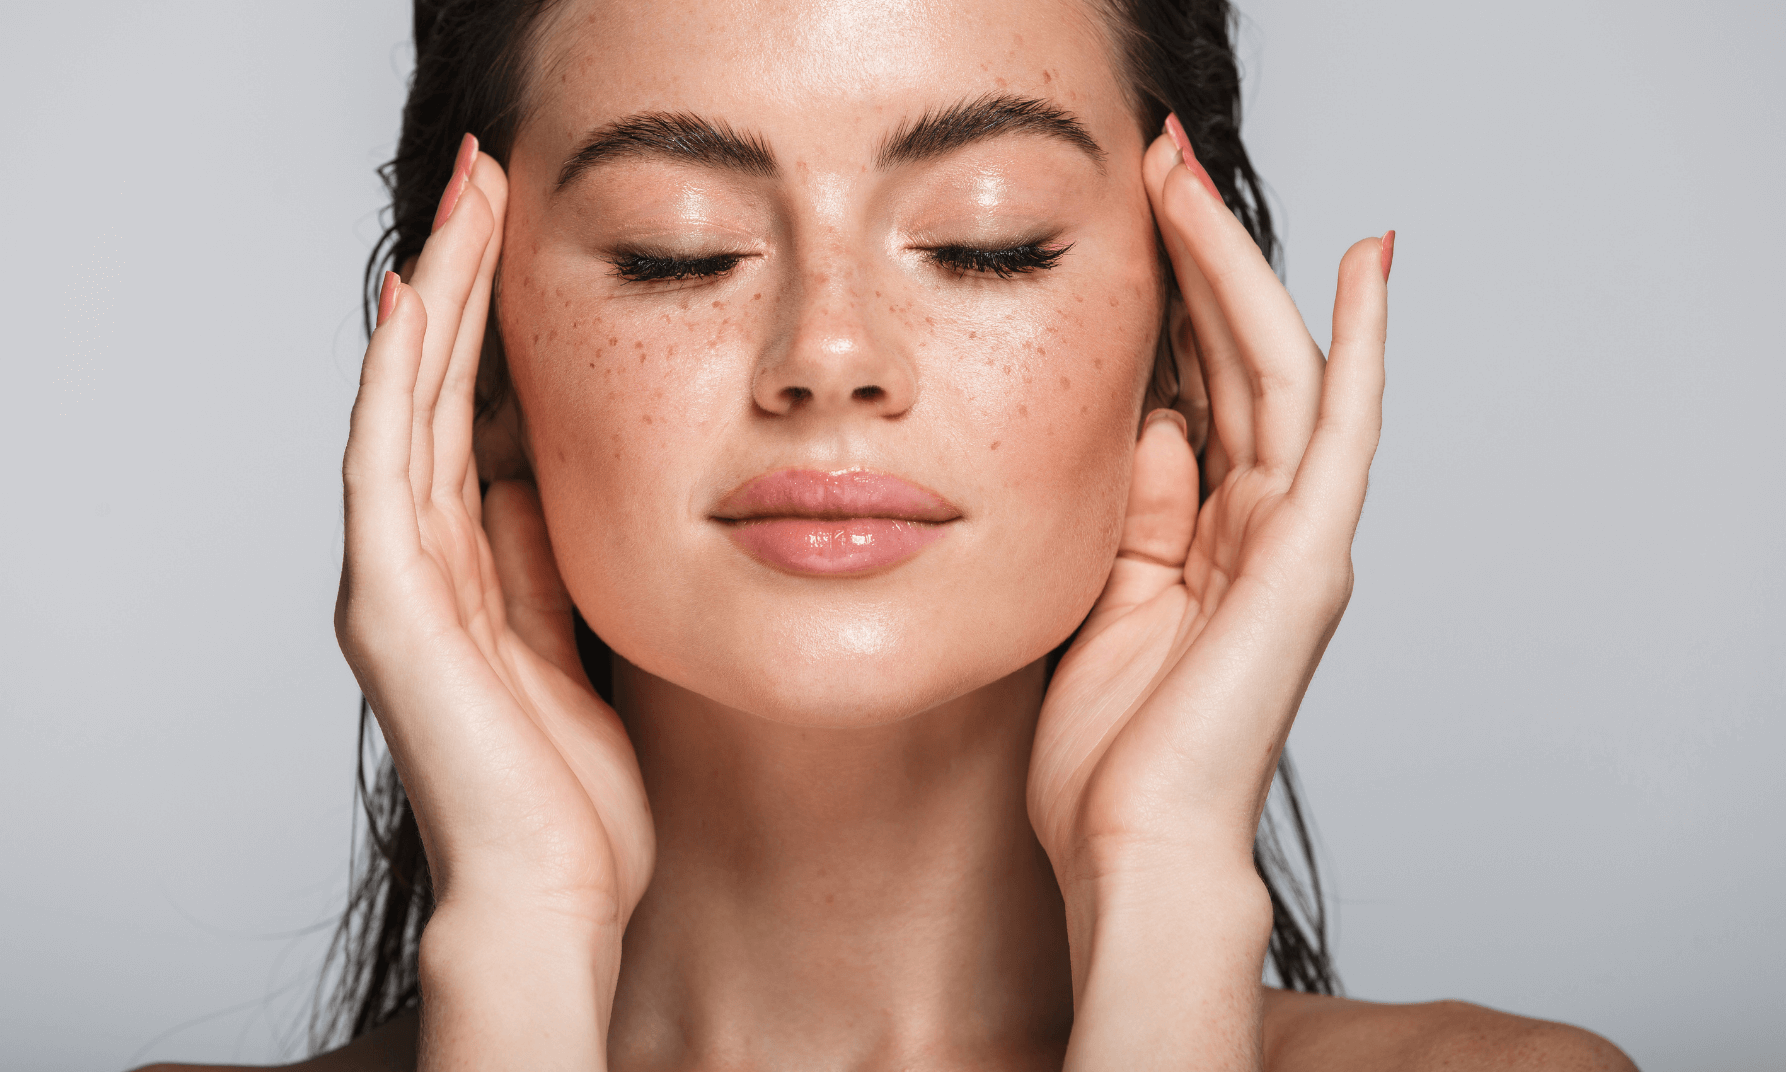 Shows clear wrinkle free skin